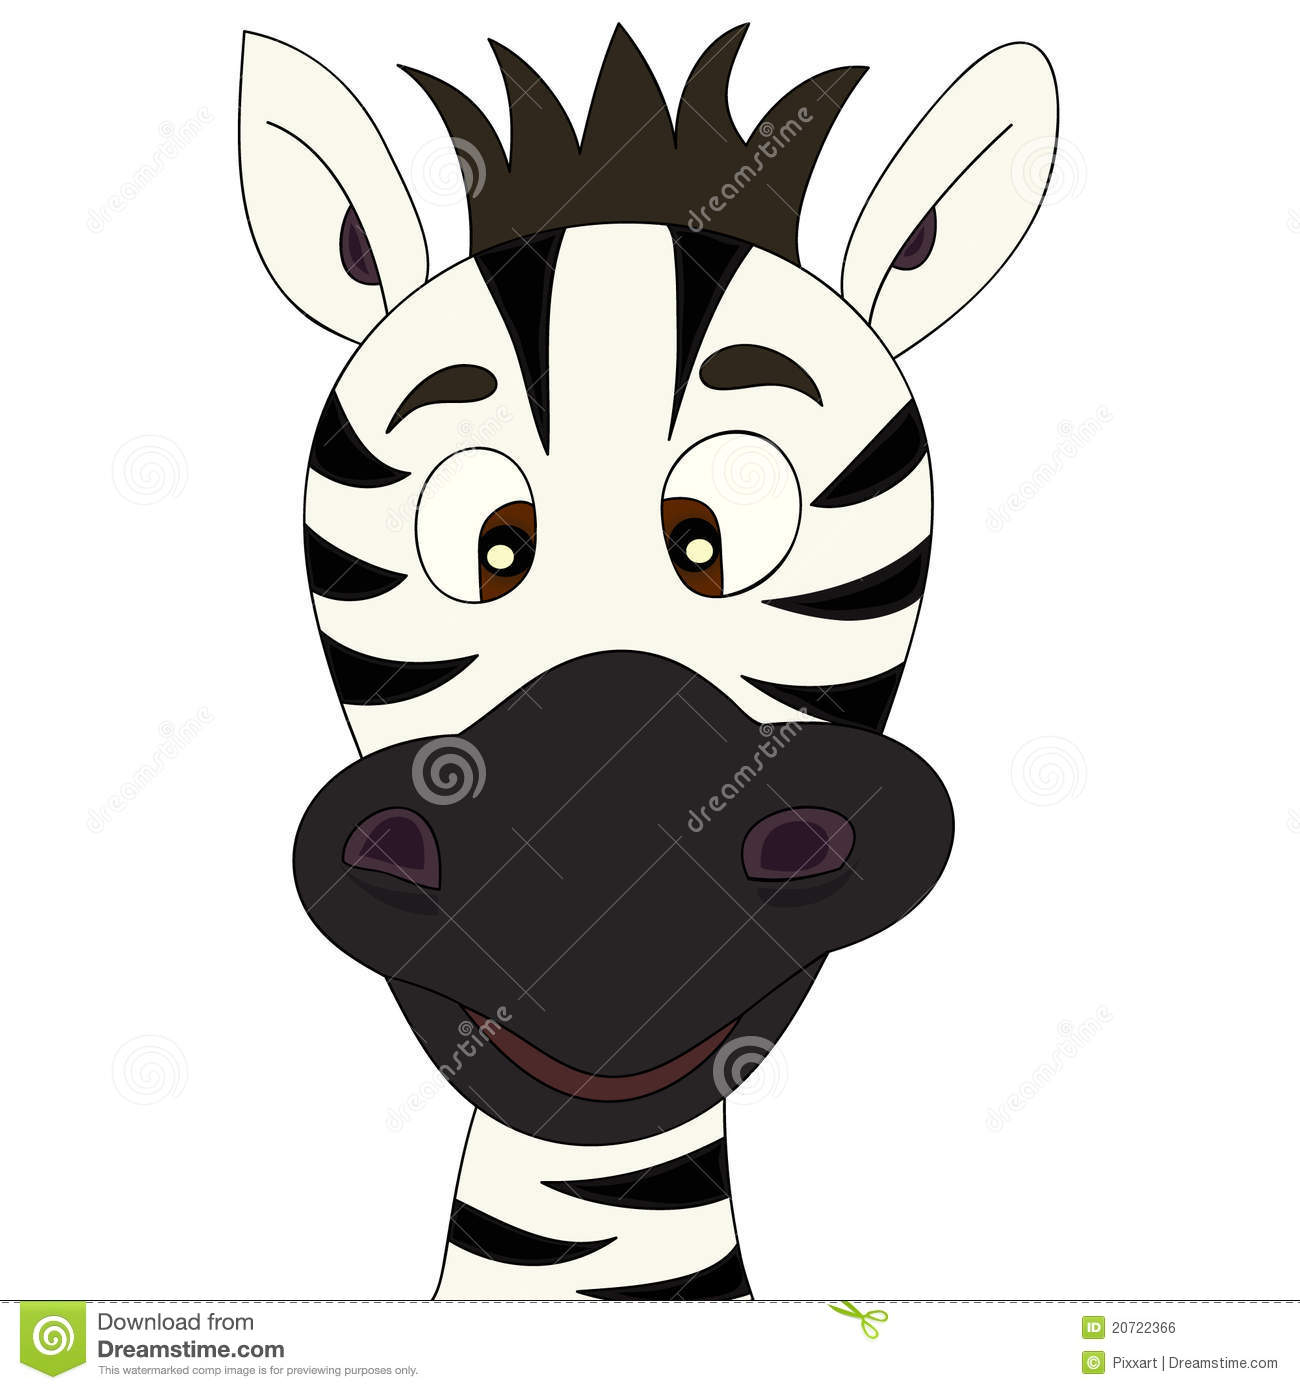 Funny Zebra Cartoon Images further Lab Clip Art likewise Cartoon Rhinoceros Pictures also Zebra Background Images in addition Royalty Free Stock Images Cartoon Cat Illustration Children Beautiful Image34849549. on zebra clip art